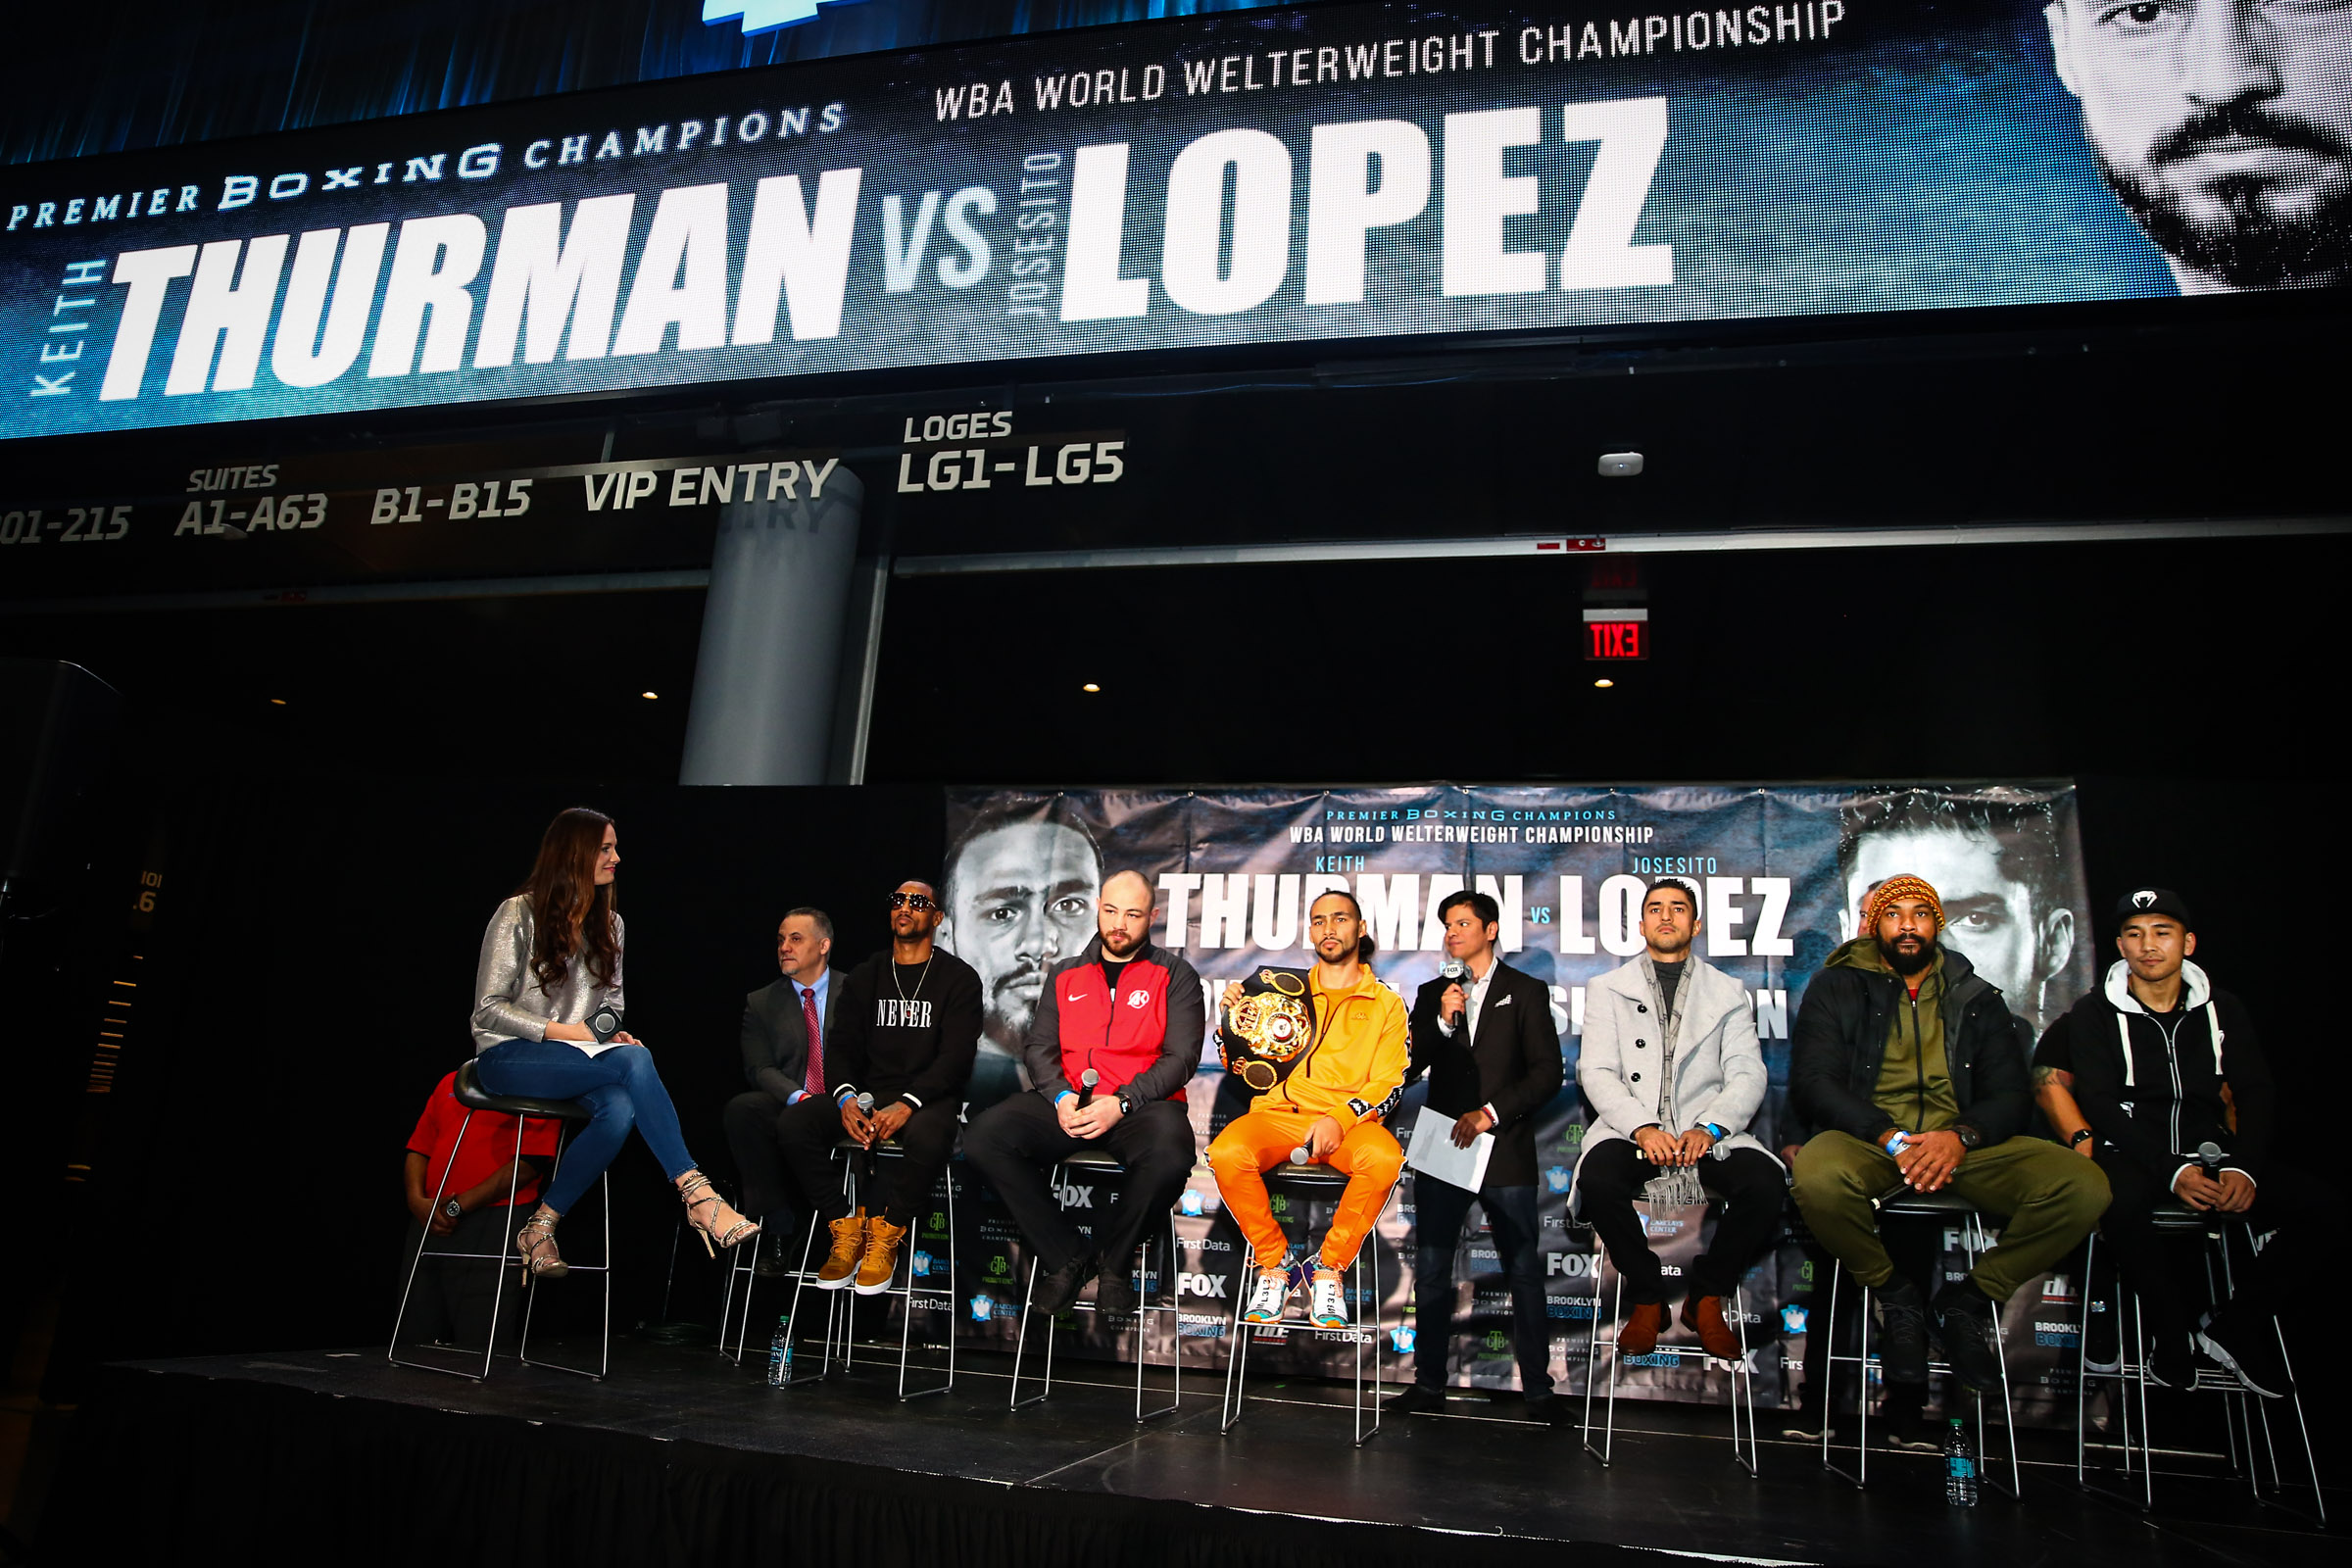 Thurman vs Lopez